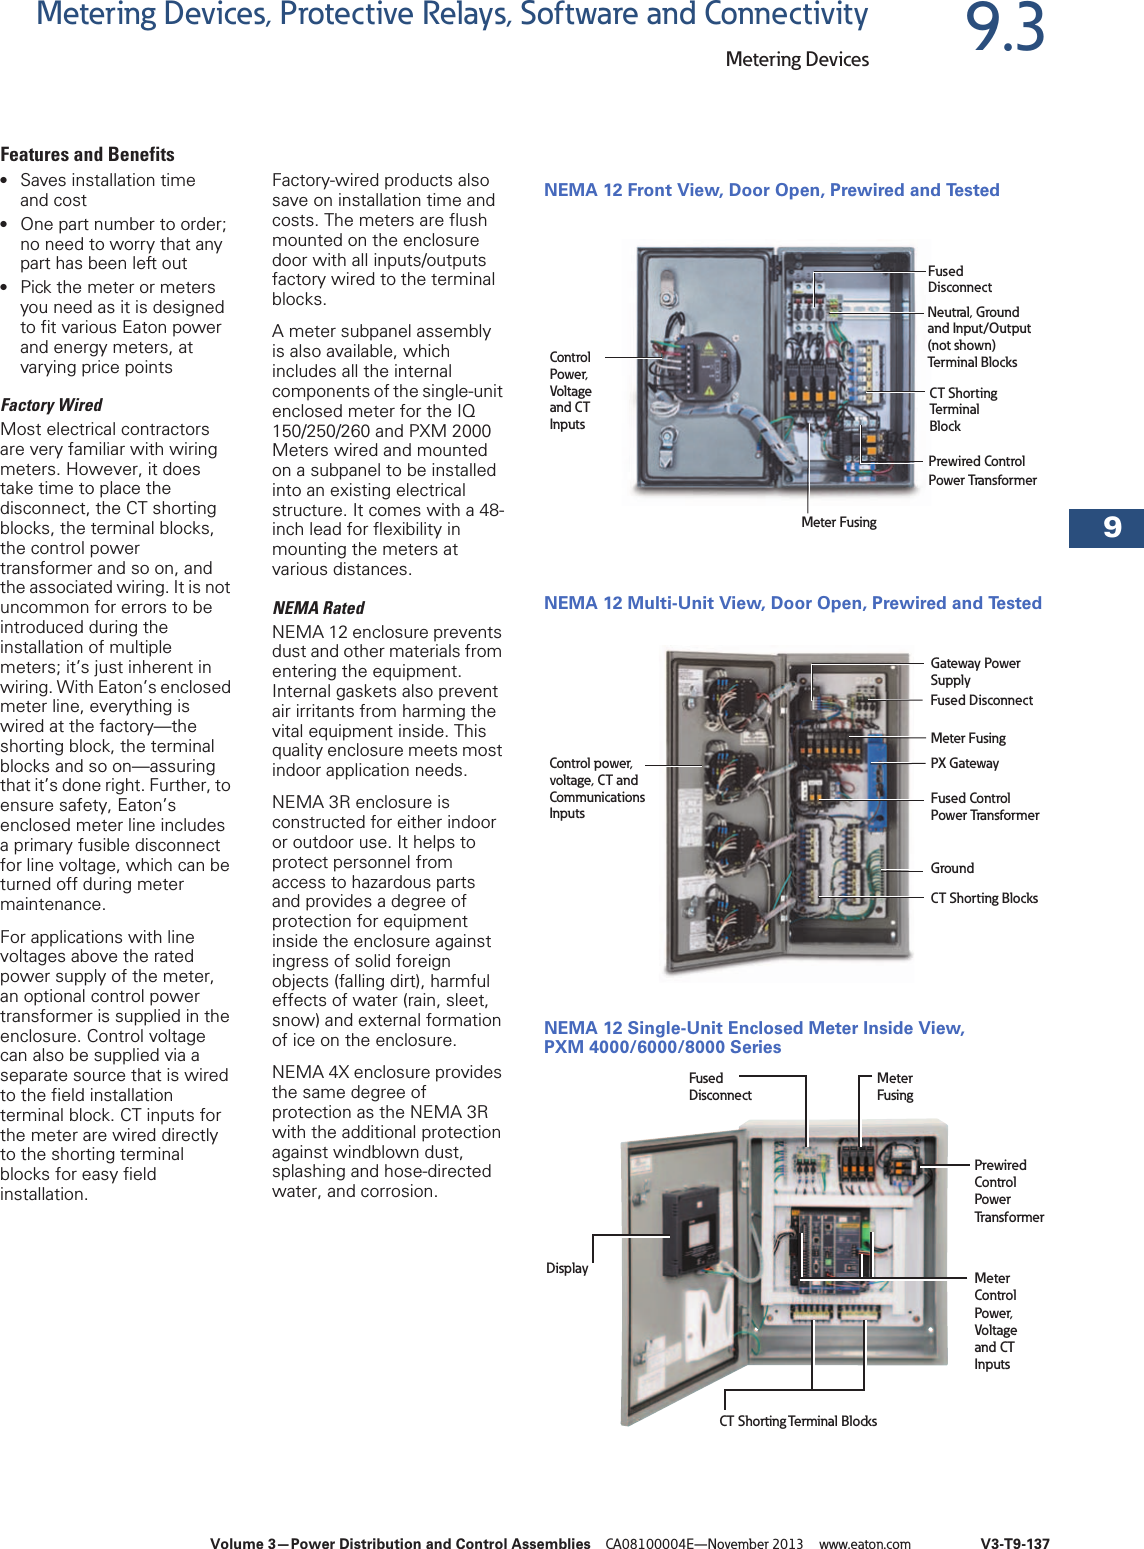 Volume 03—Power Distribution And Control Assemblies 150190 Catalog